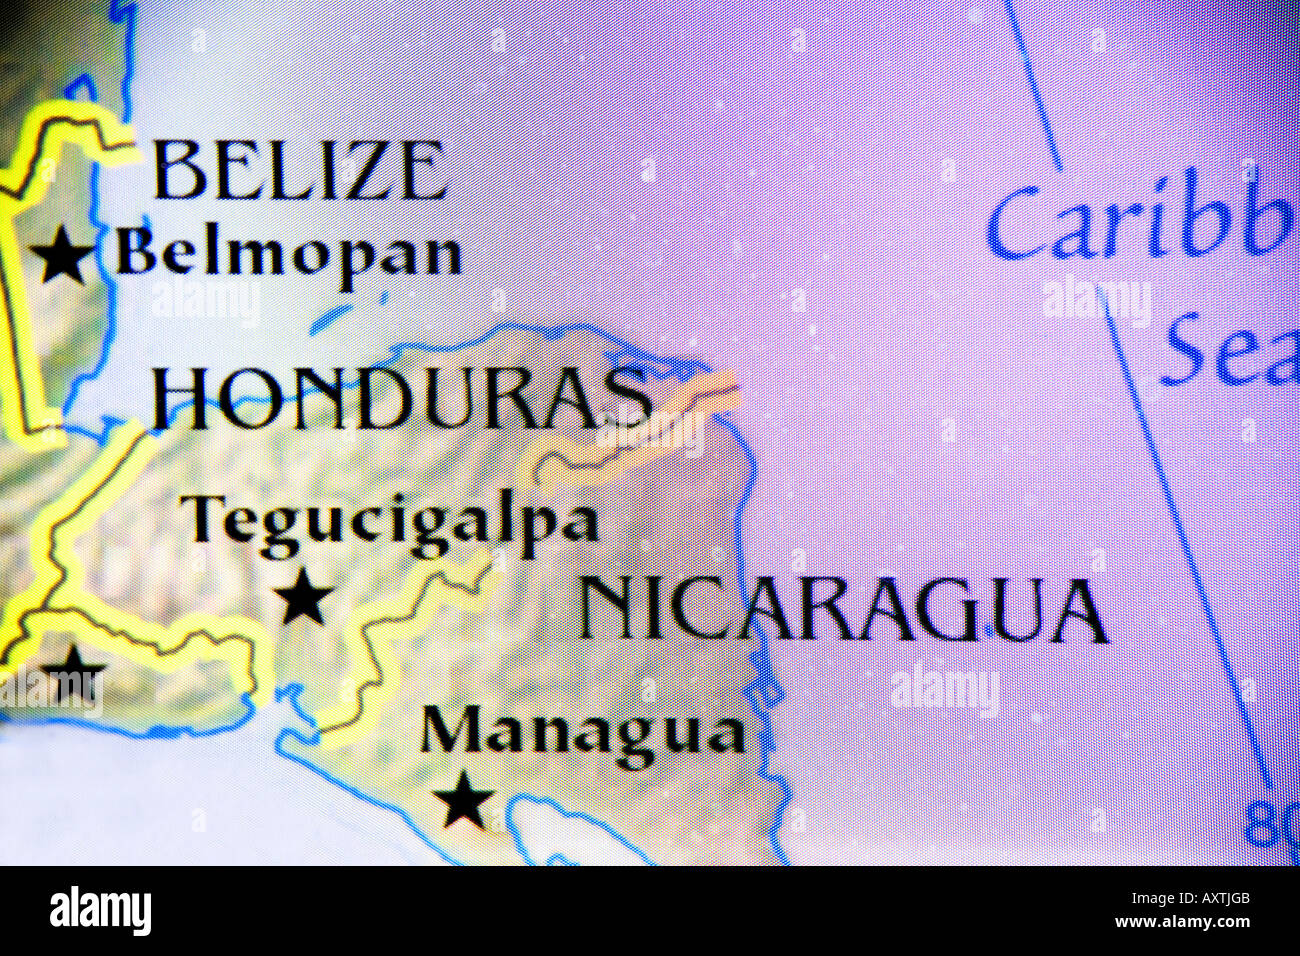 Close-up map showing the countries of Belize, Honduras, and ...